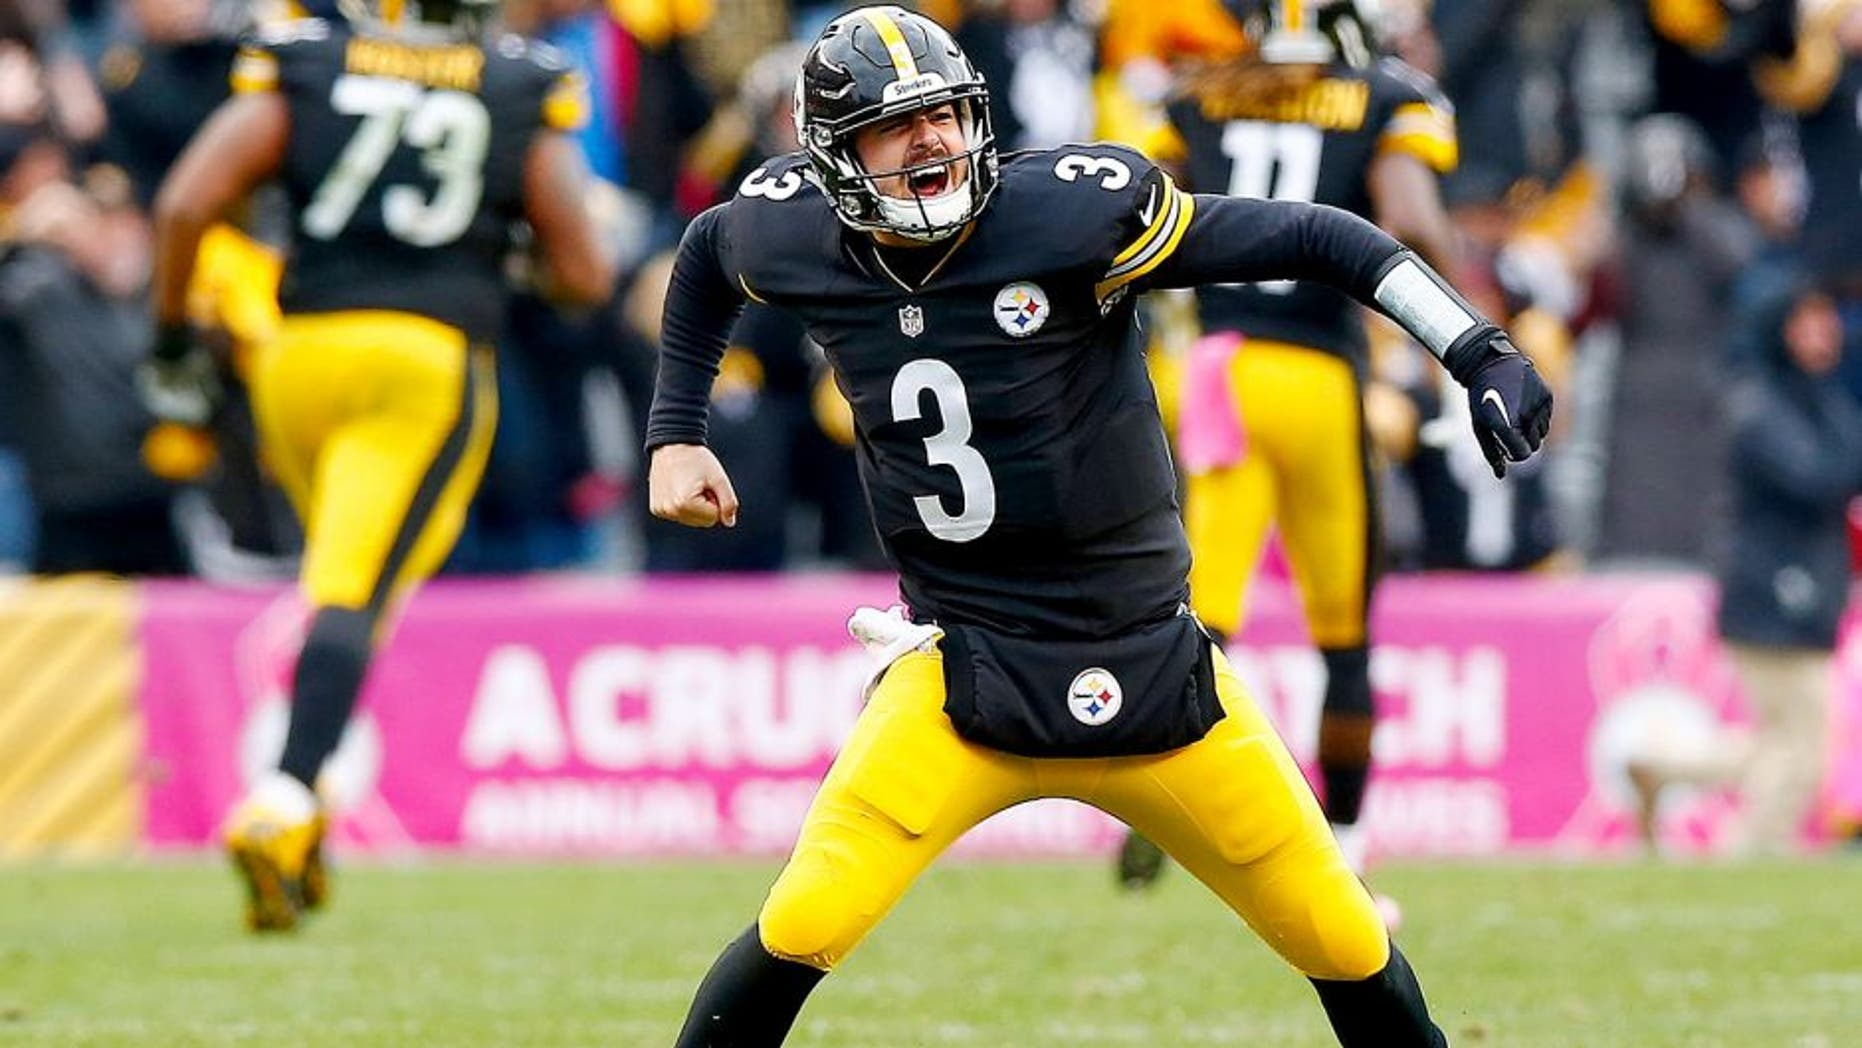 PITTSBURGH, PA - OCTOBER 18: Landry Jones #3 of the Pittsburgh Steelers celebrates a 4th quarter touchdown pass during the game against the Arizona Cardinals at Heinz Field on October 18, 2015 in Pittsburgh, Pennsylvania. (Photo by Jared Wickerham/Getty Images)